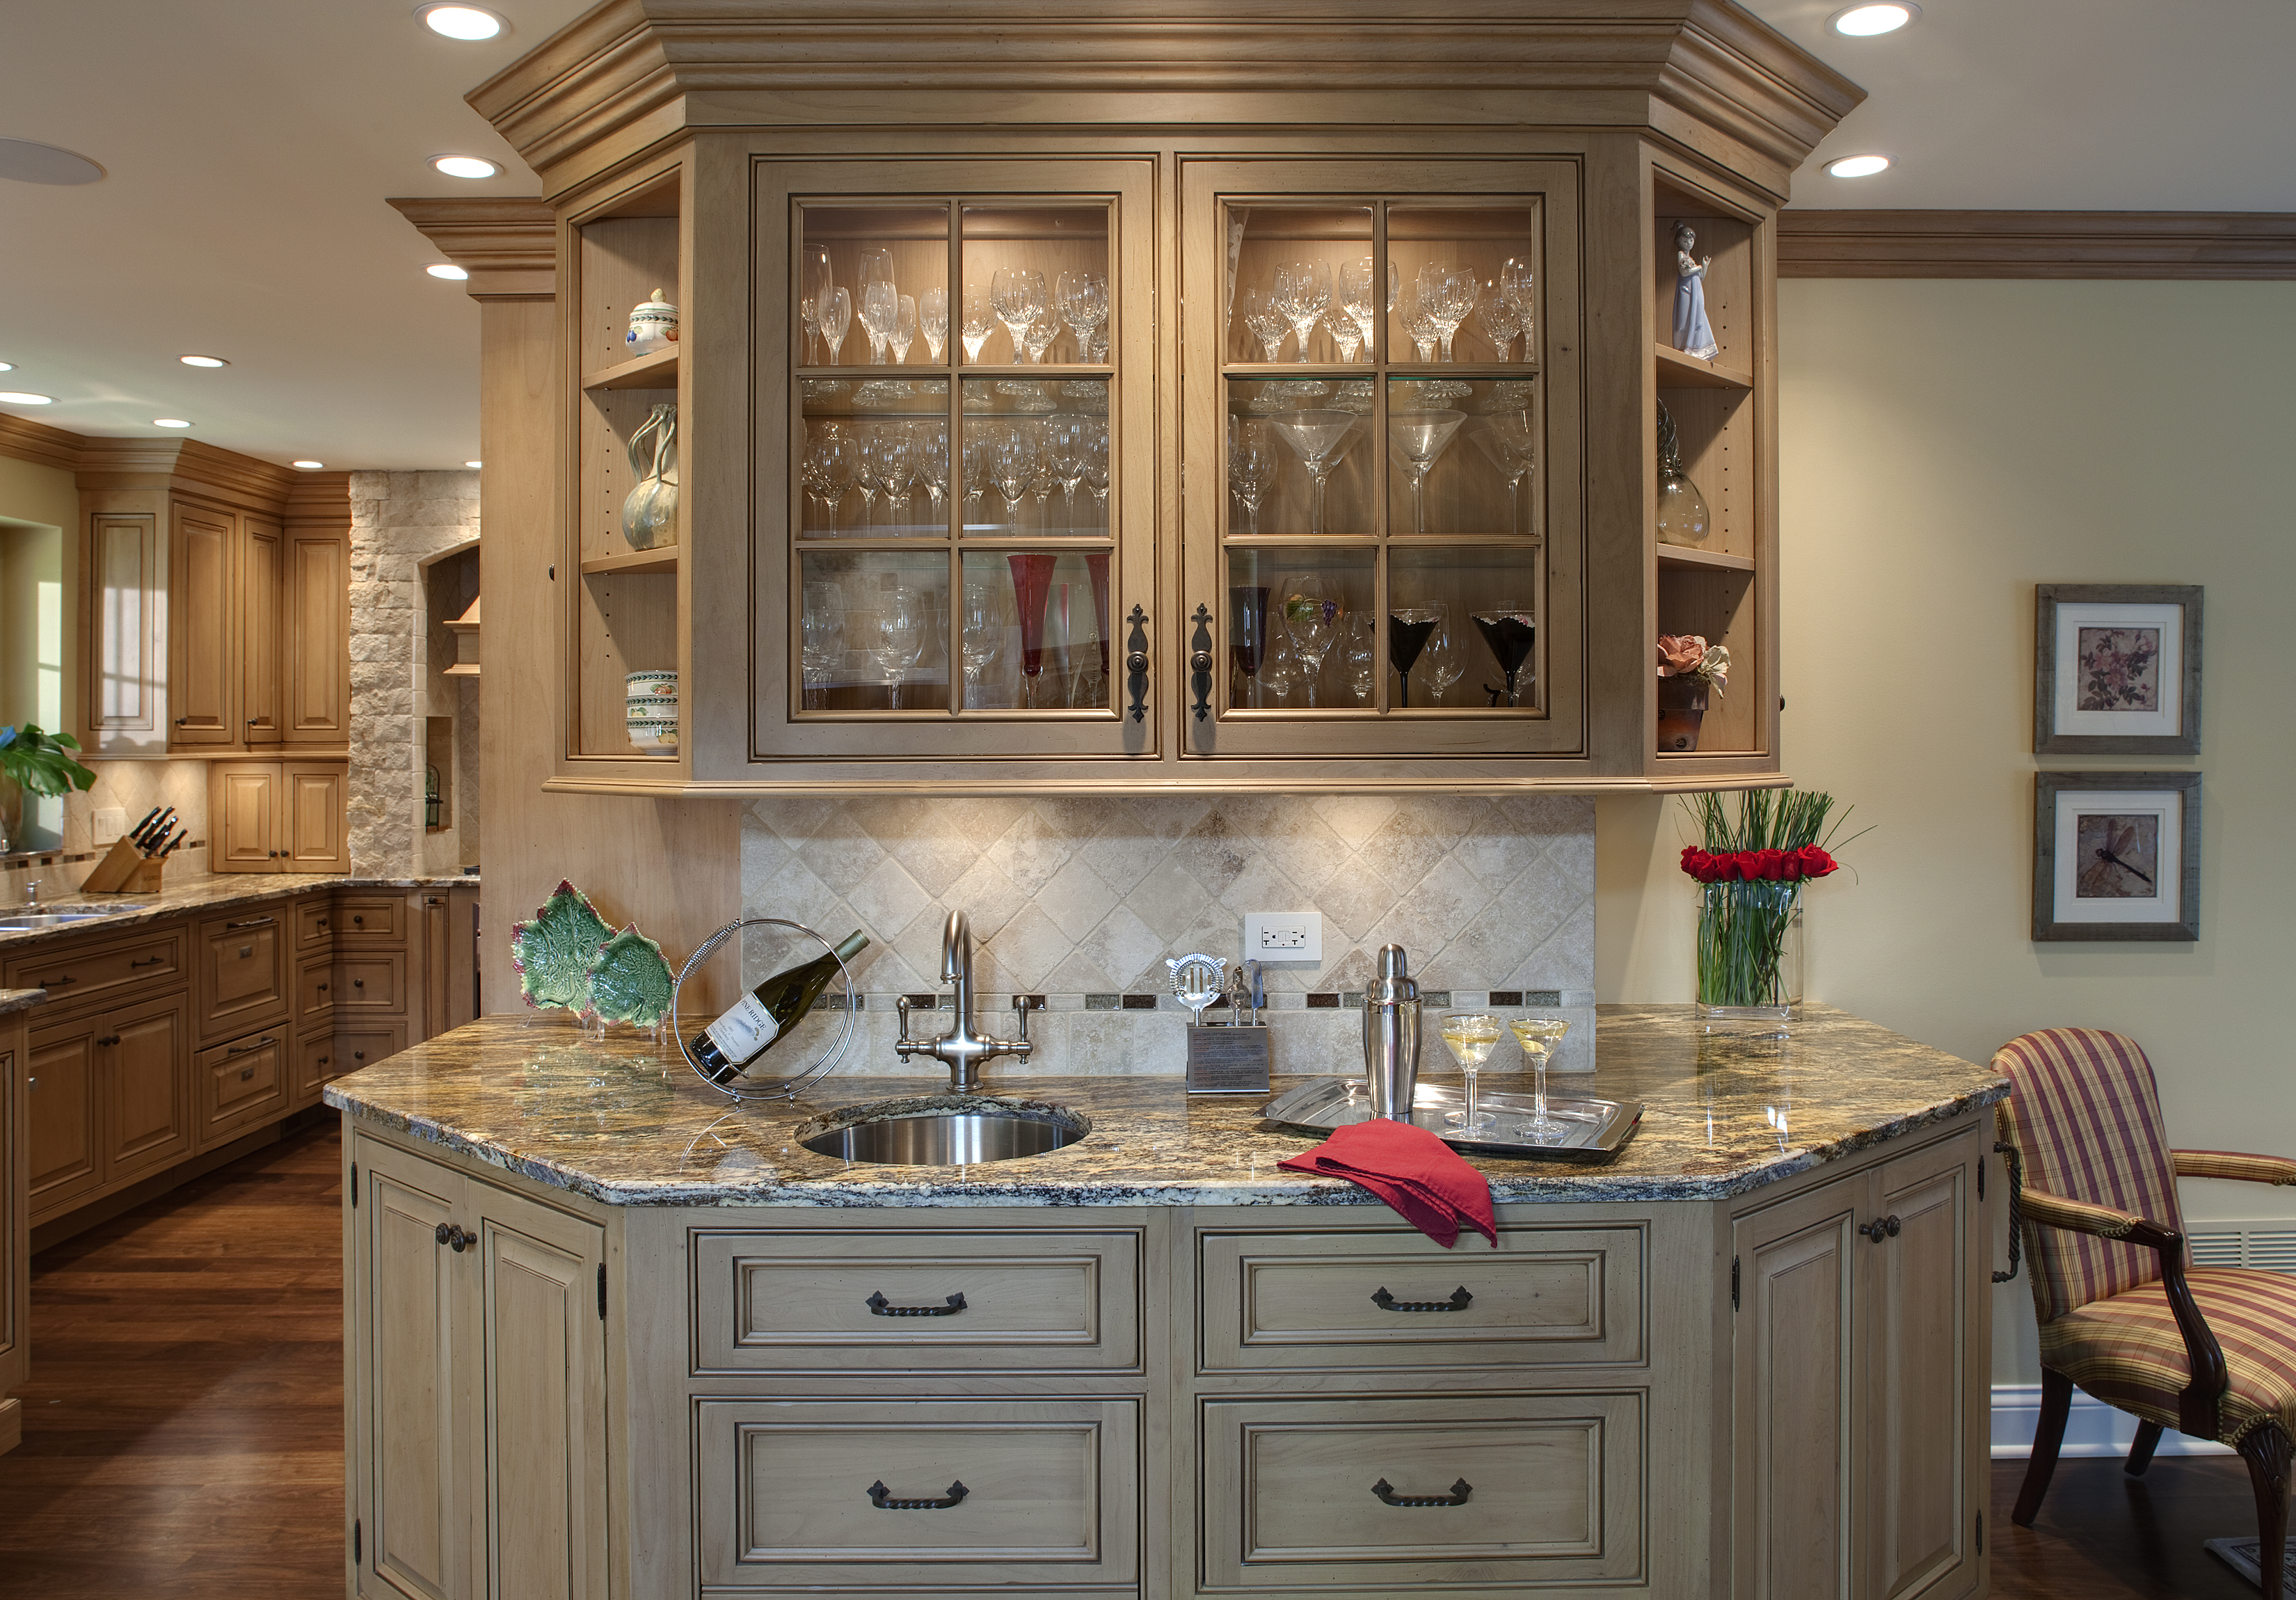 Best Kitchen Gallery Tuscan Style Cabi With White And Wooden Tone Of